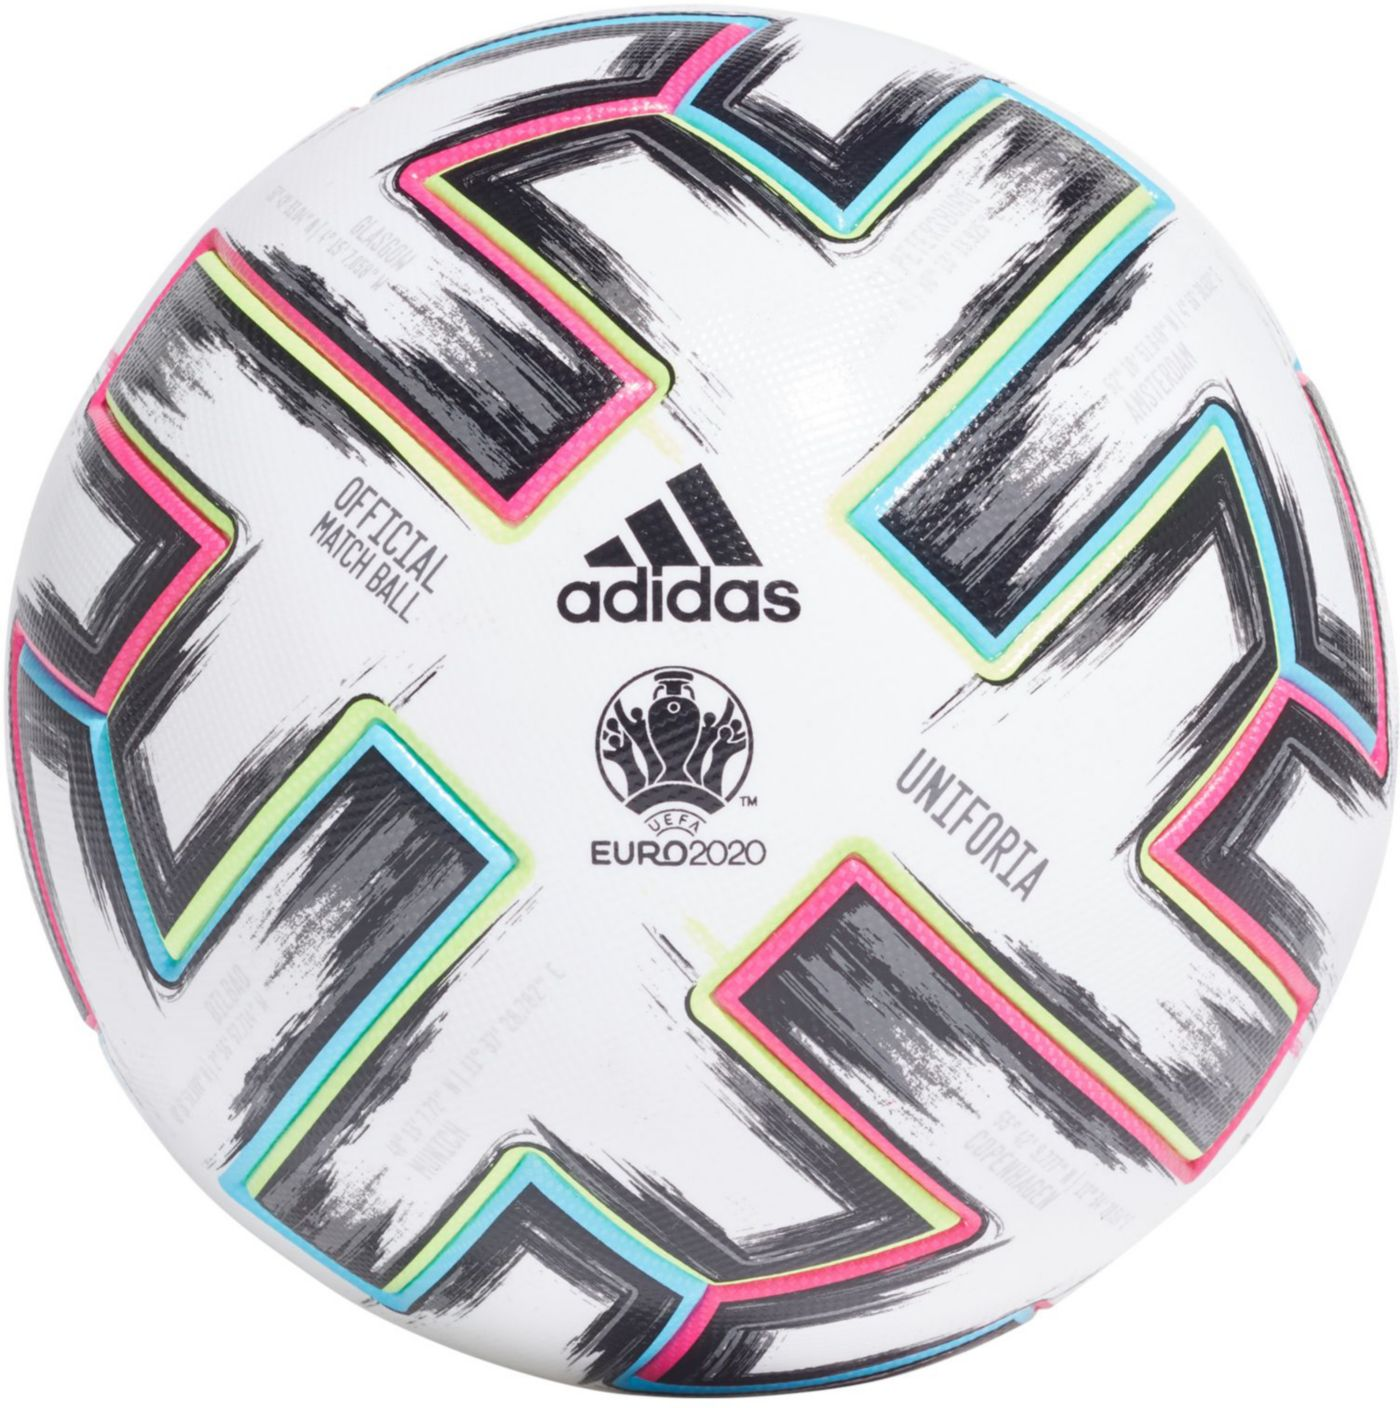 adidas Euro 2020 Uniforia League Soccer Ball